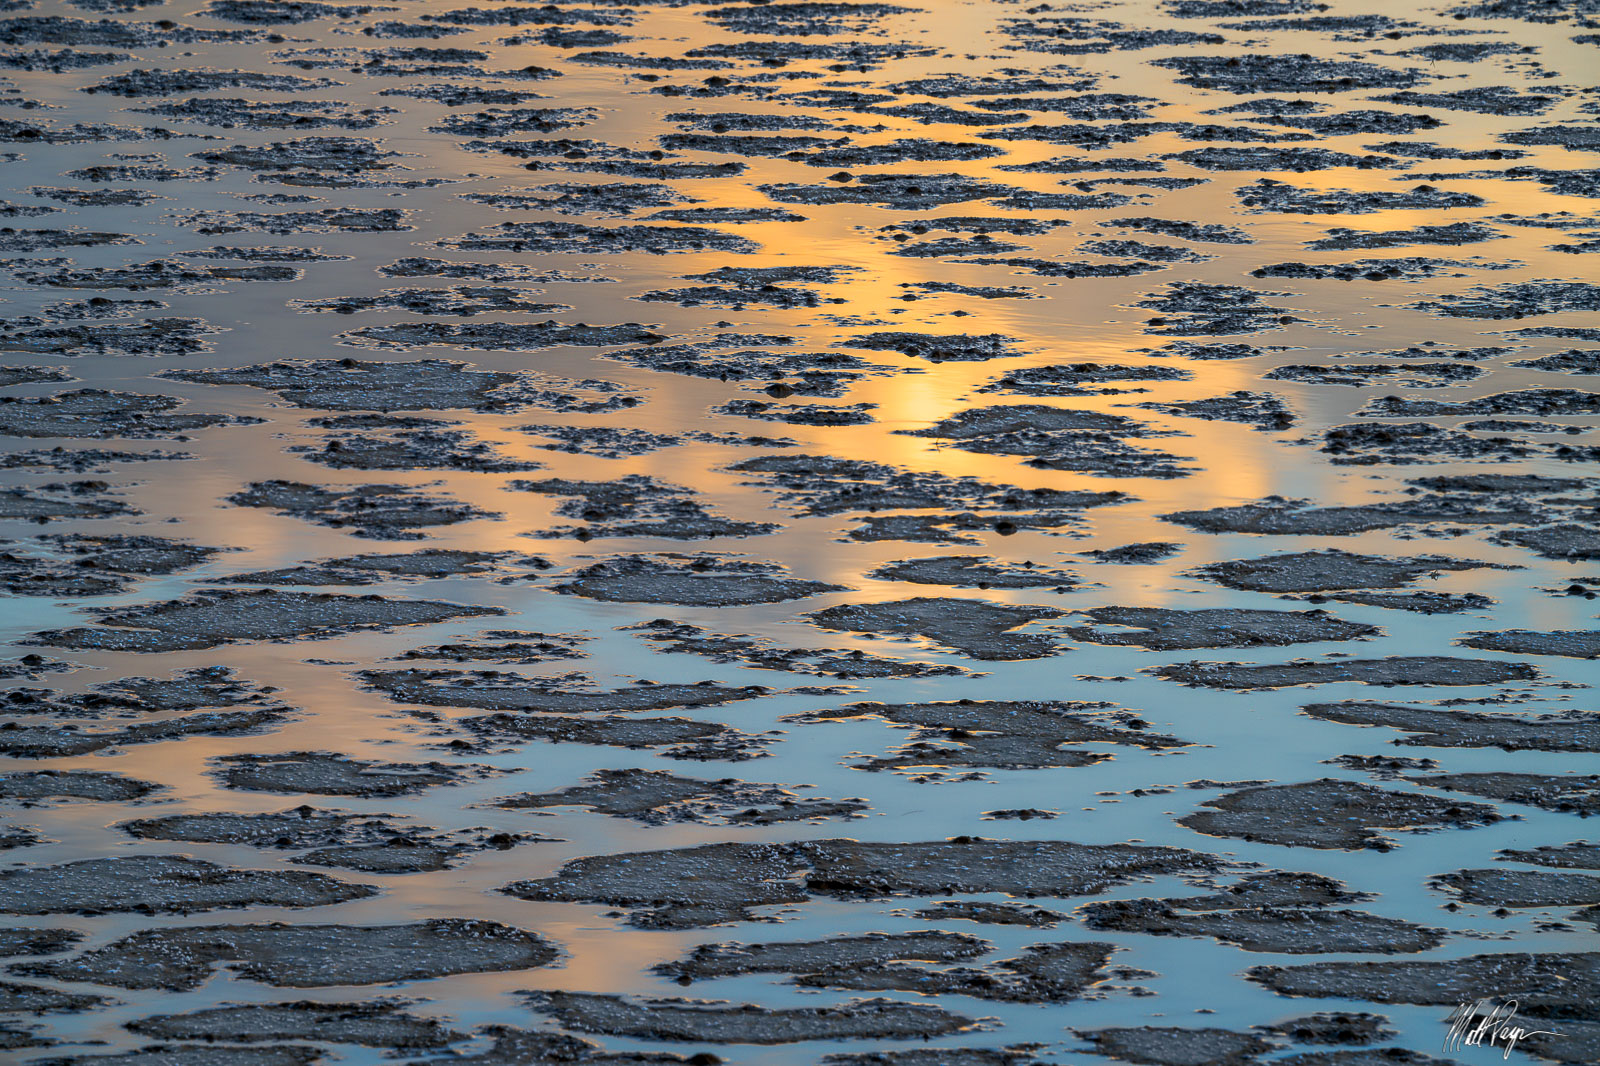 Cracks in the mud tiles found in the Alvord Desert of Oregon reflect the skies tones of orange and blue at sunset. Photo © copyright...